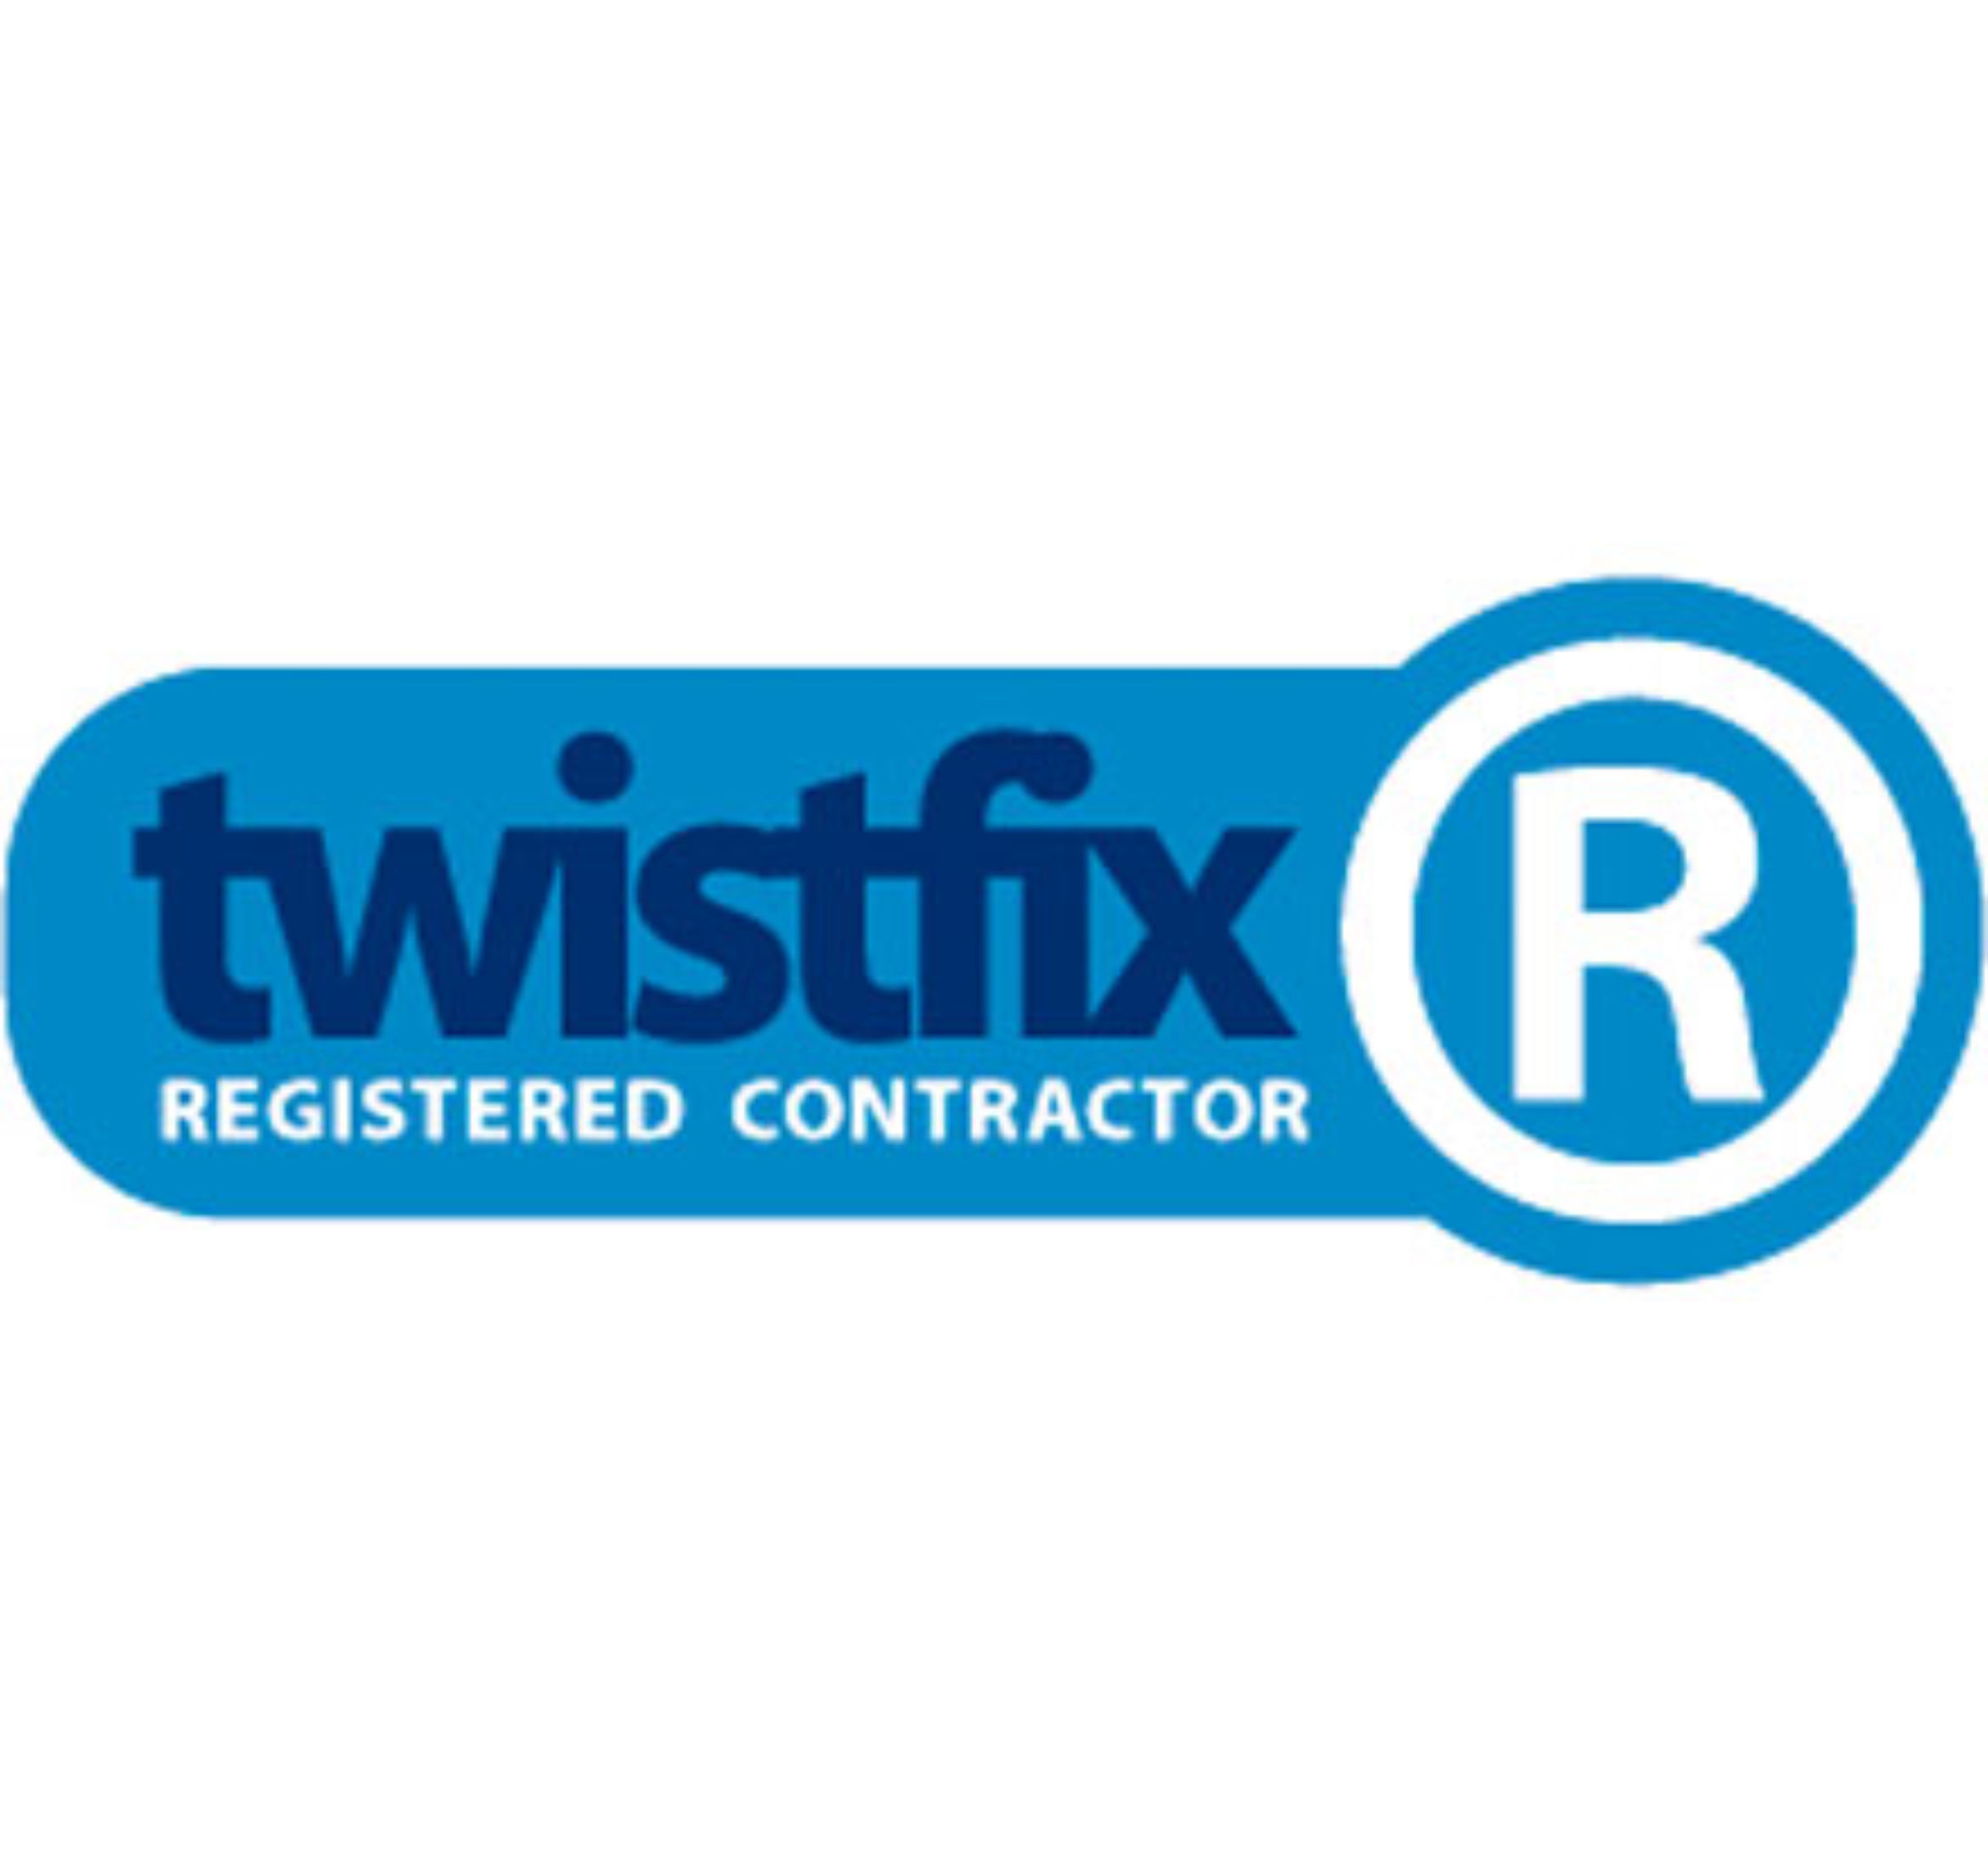 registered contractor logo